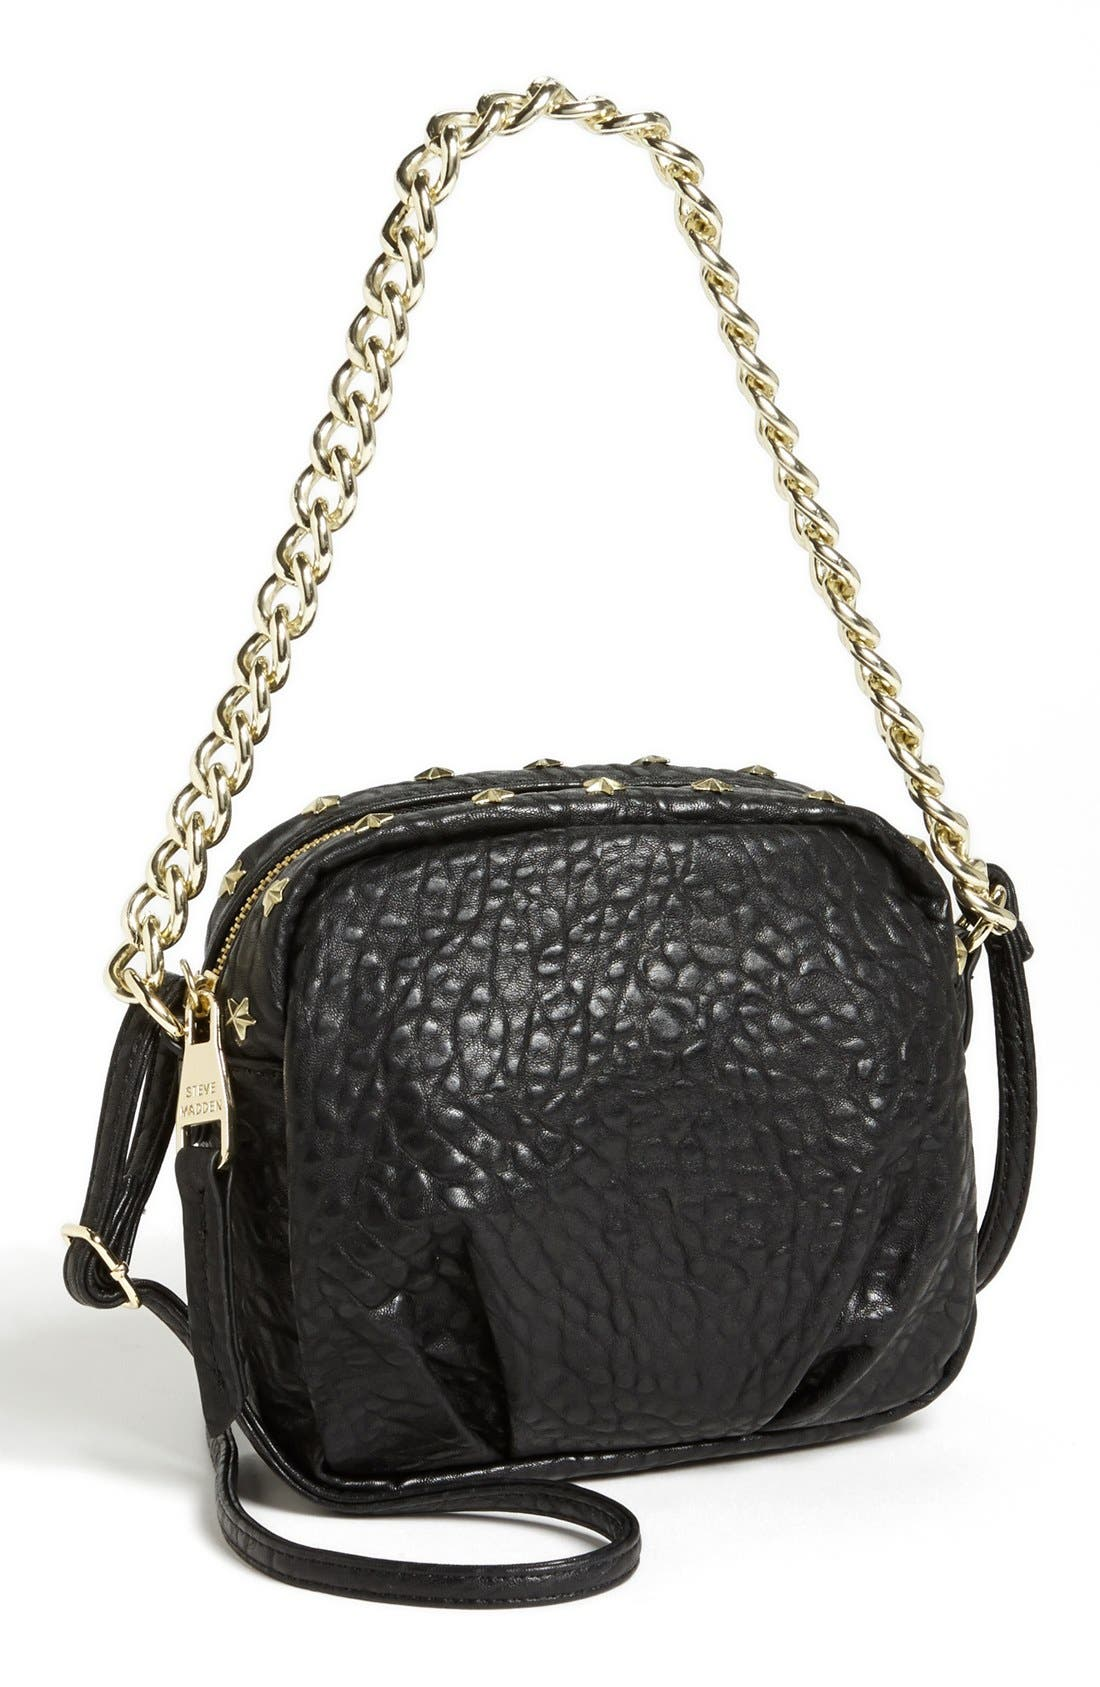 Alternate Image 1 Selected - Steve Madden Faux Leather Crossbody Bag